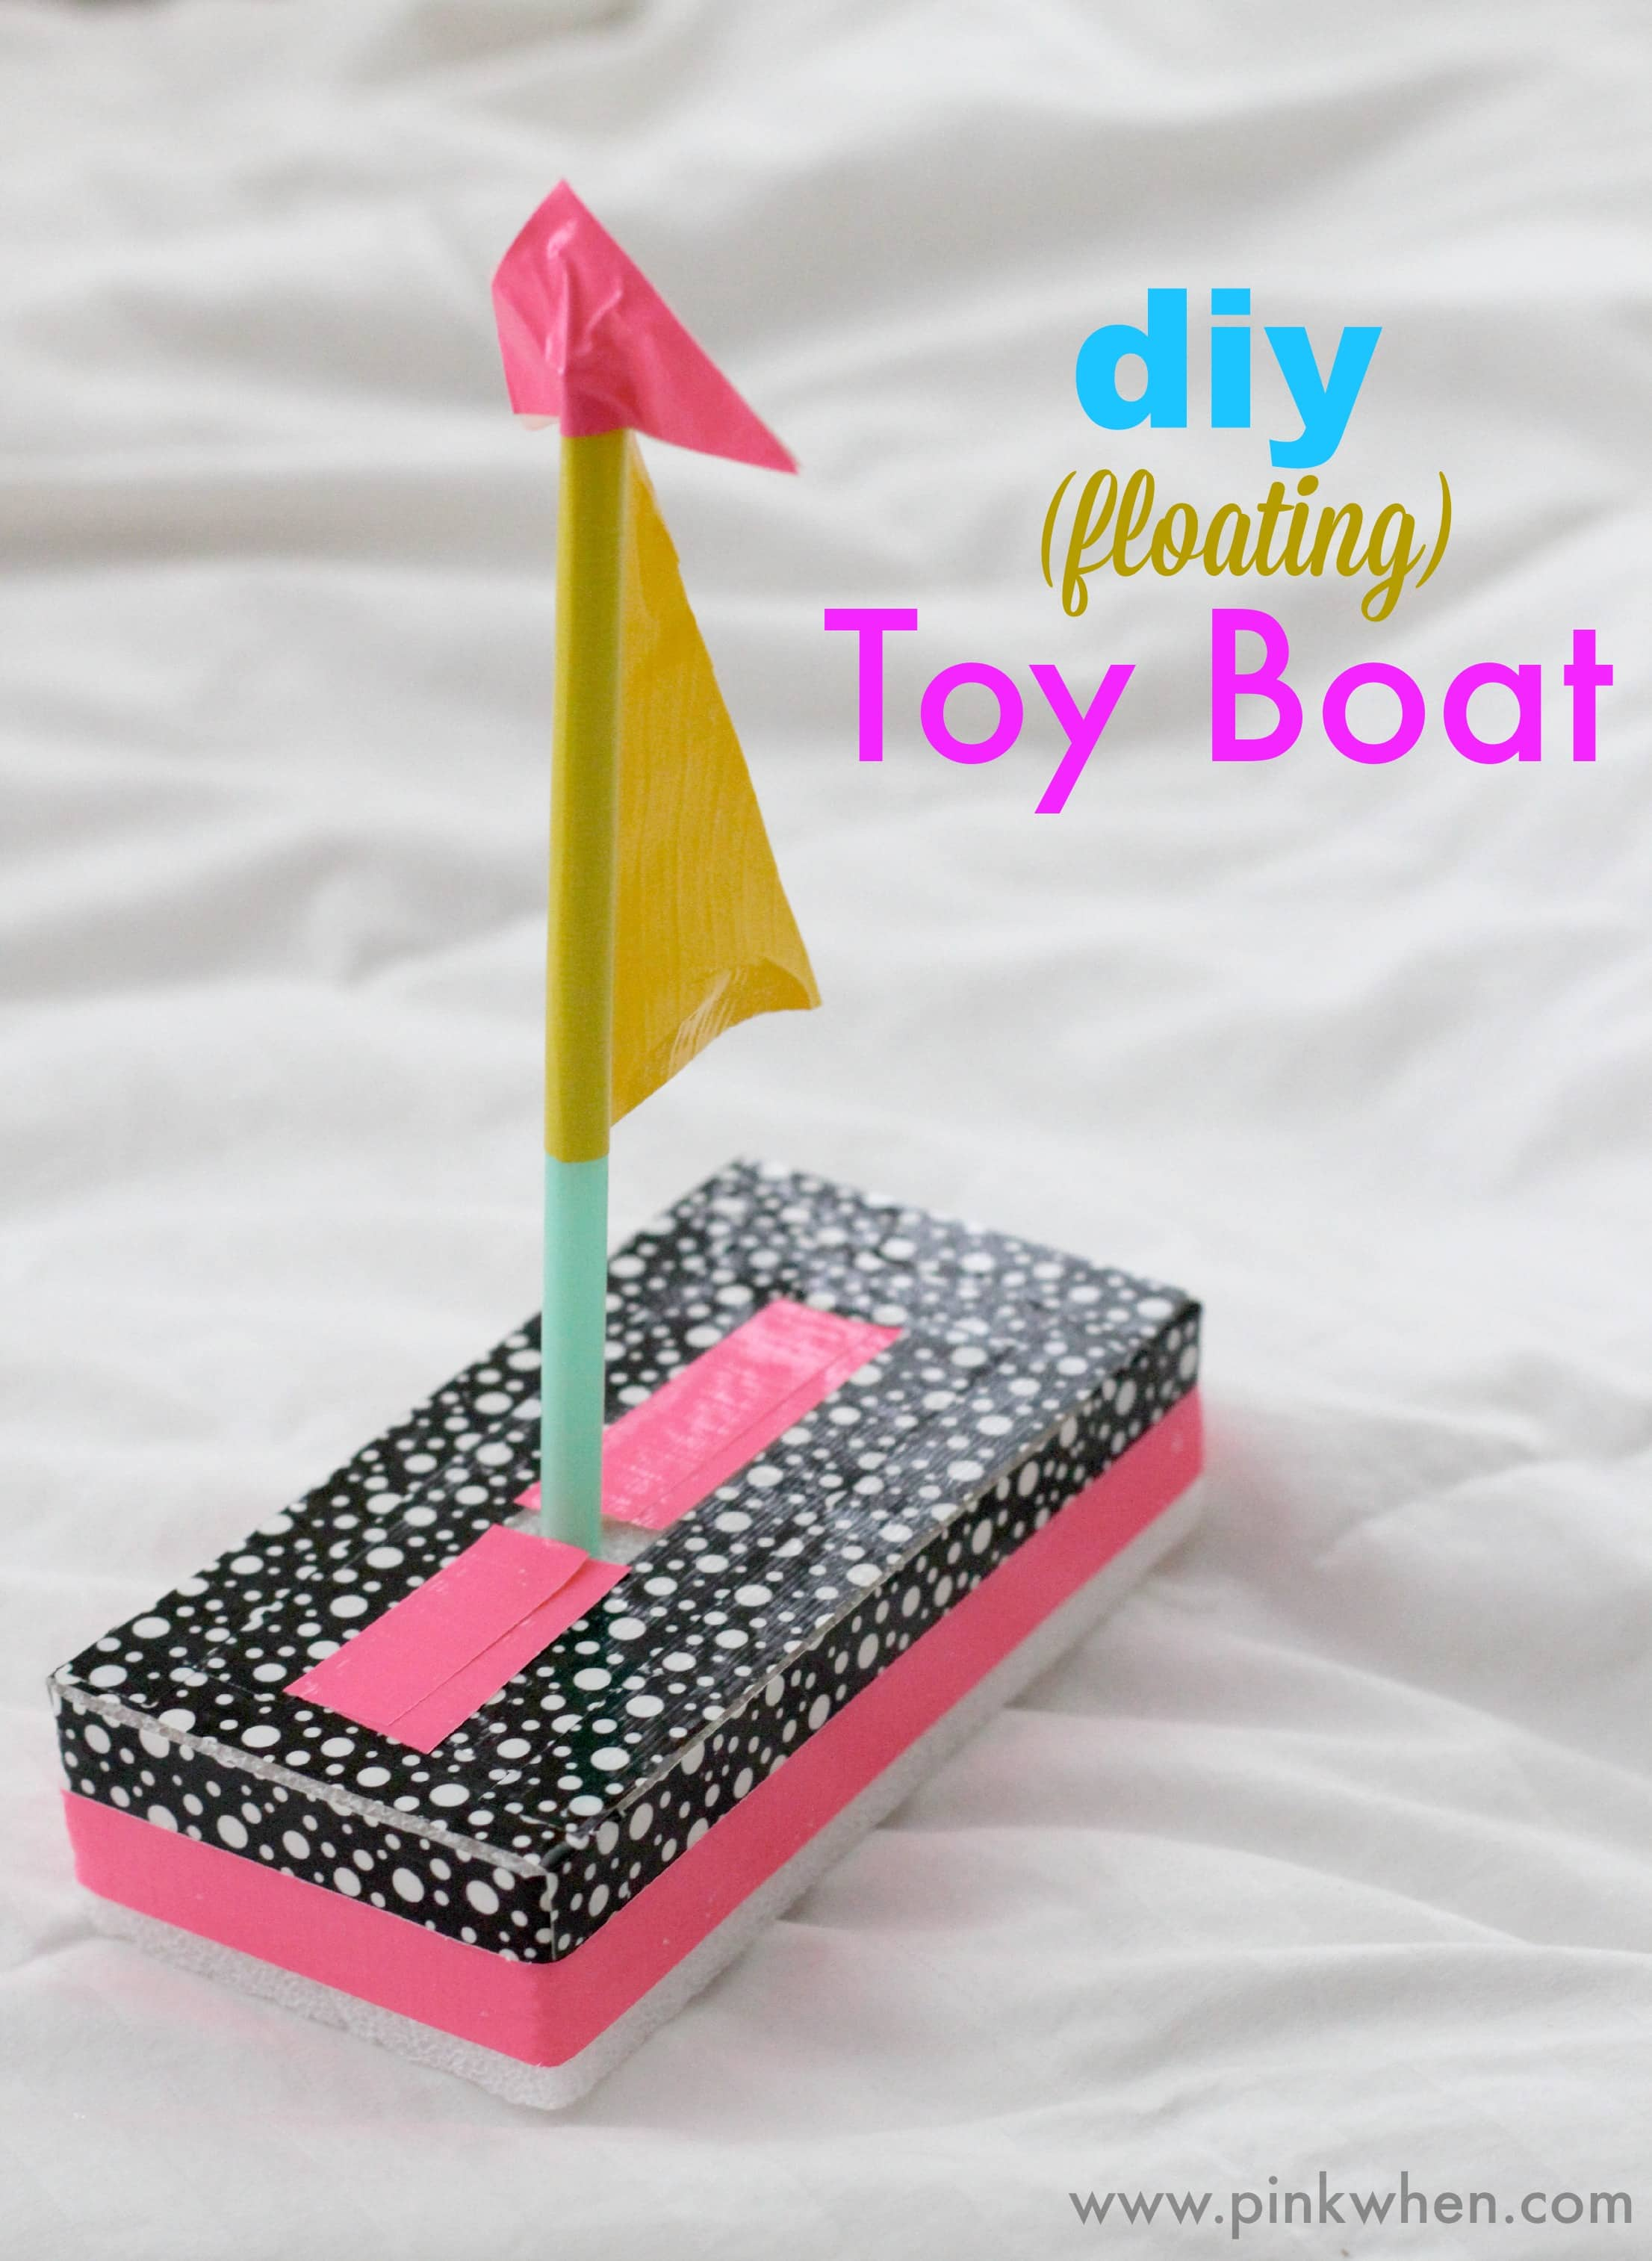 DIY Toy Boat Quick Fun crafts PinkWhen